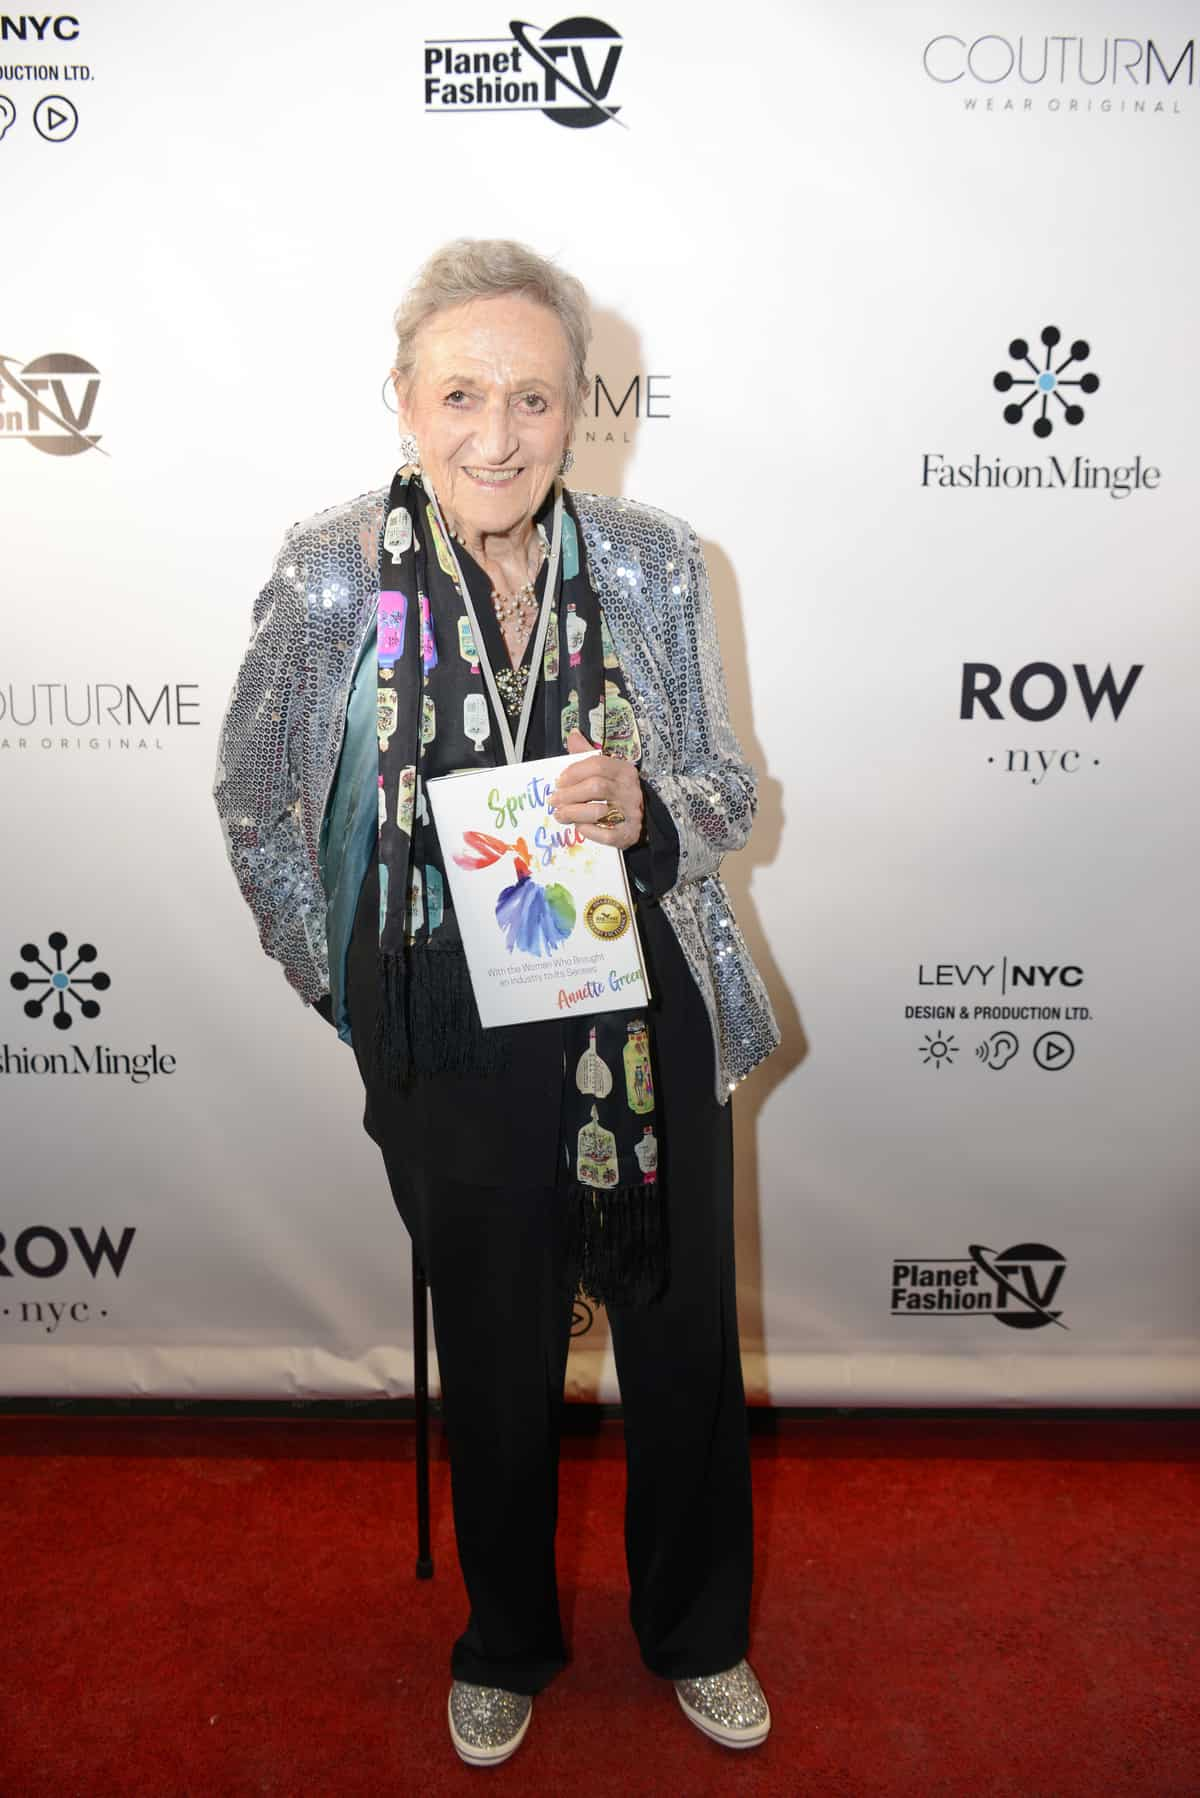 Annette Green, author of Spritzing To Success, on Fashion Mingle's NYFW Red Carpet.